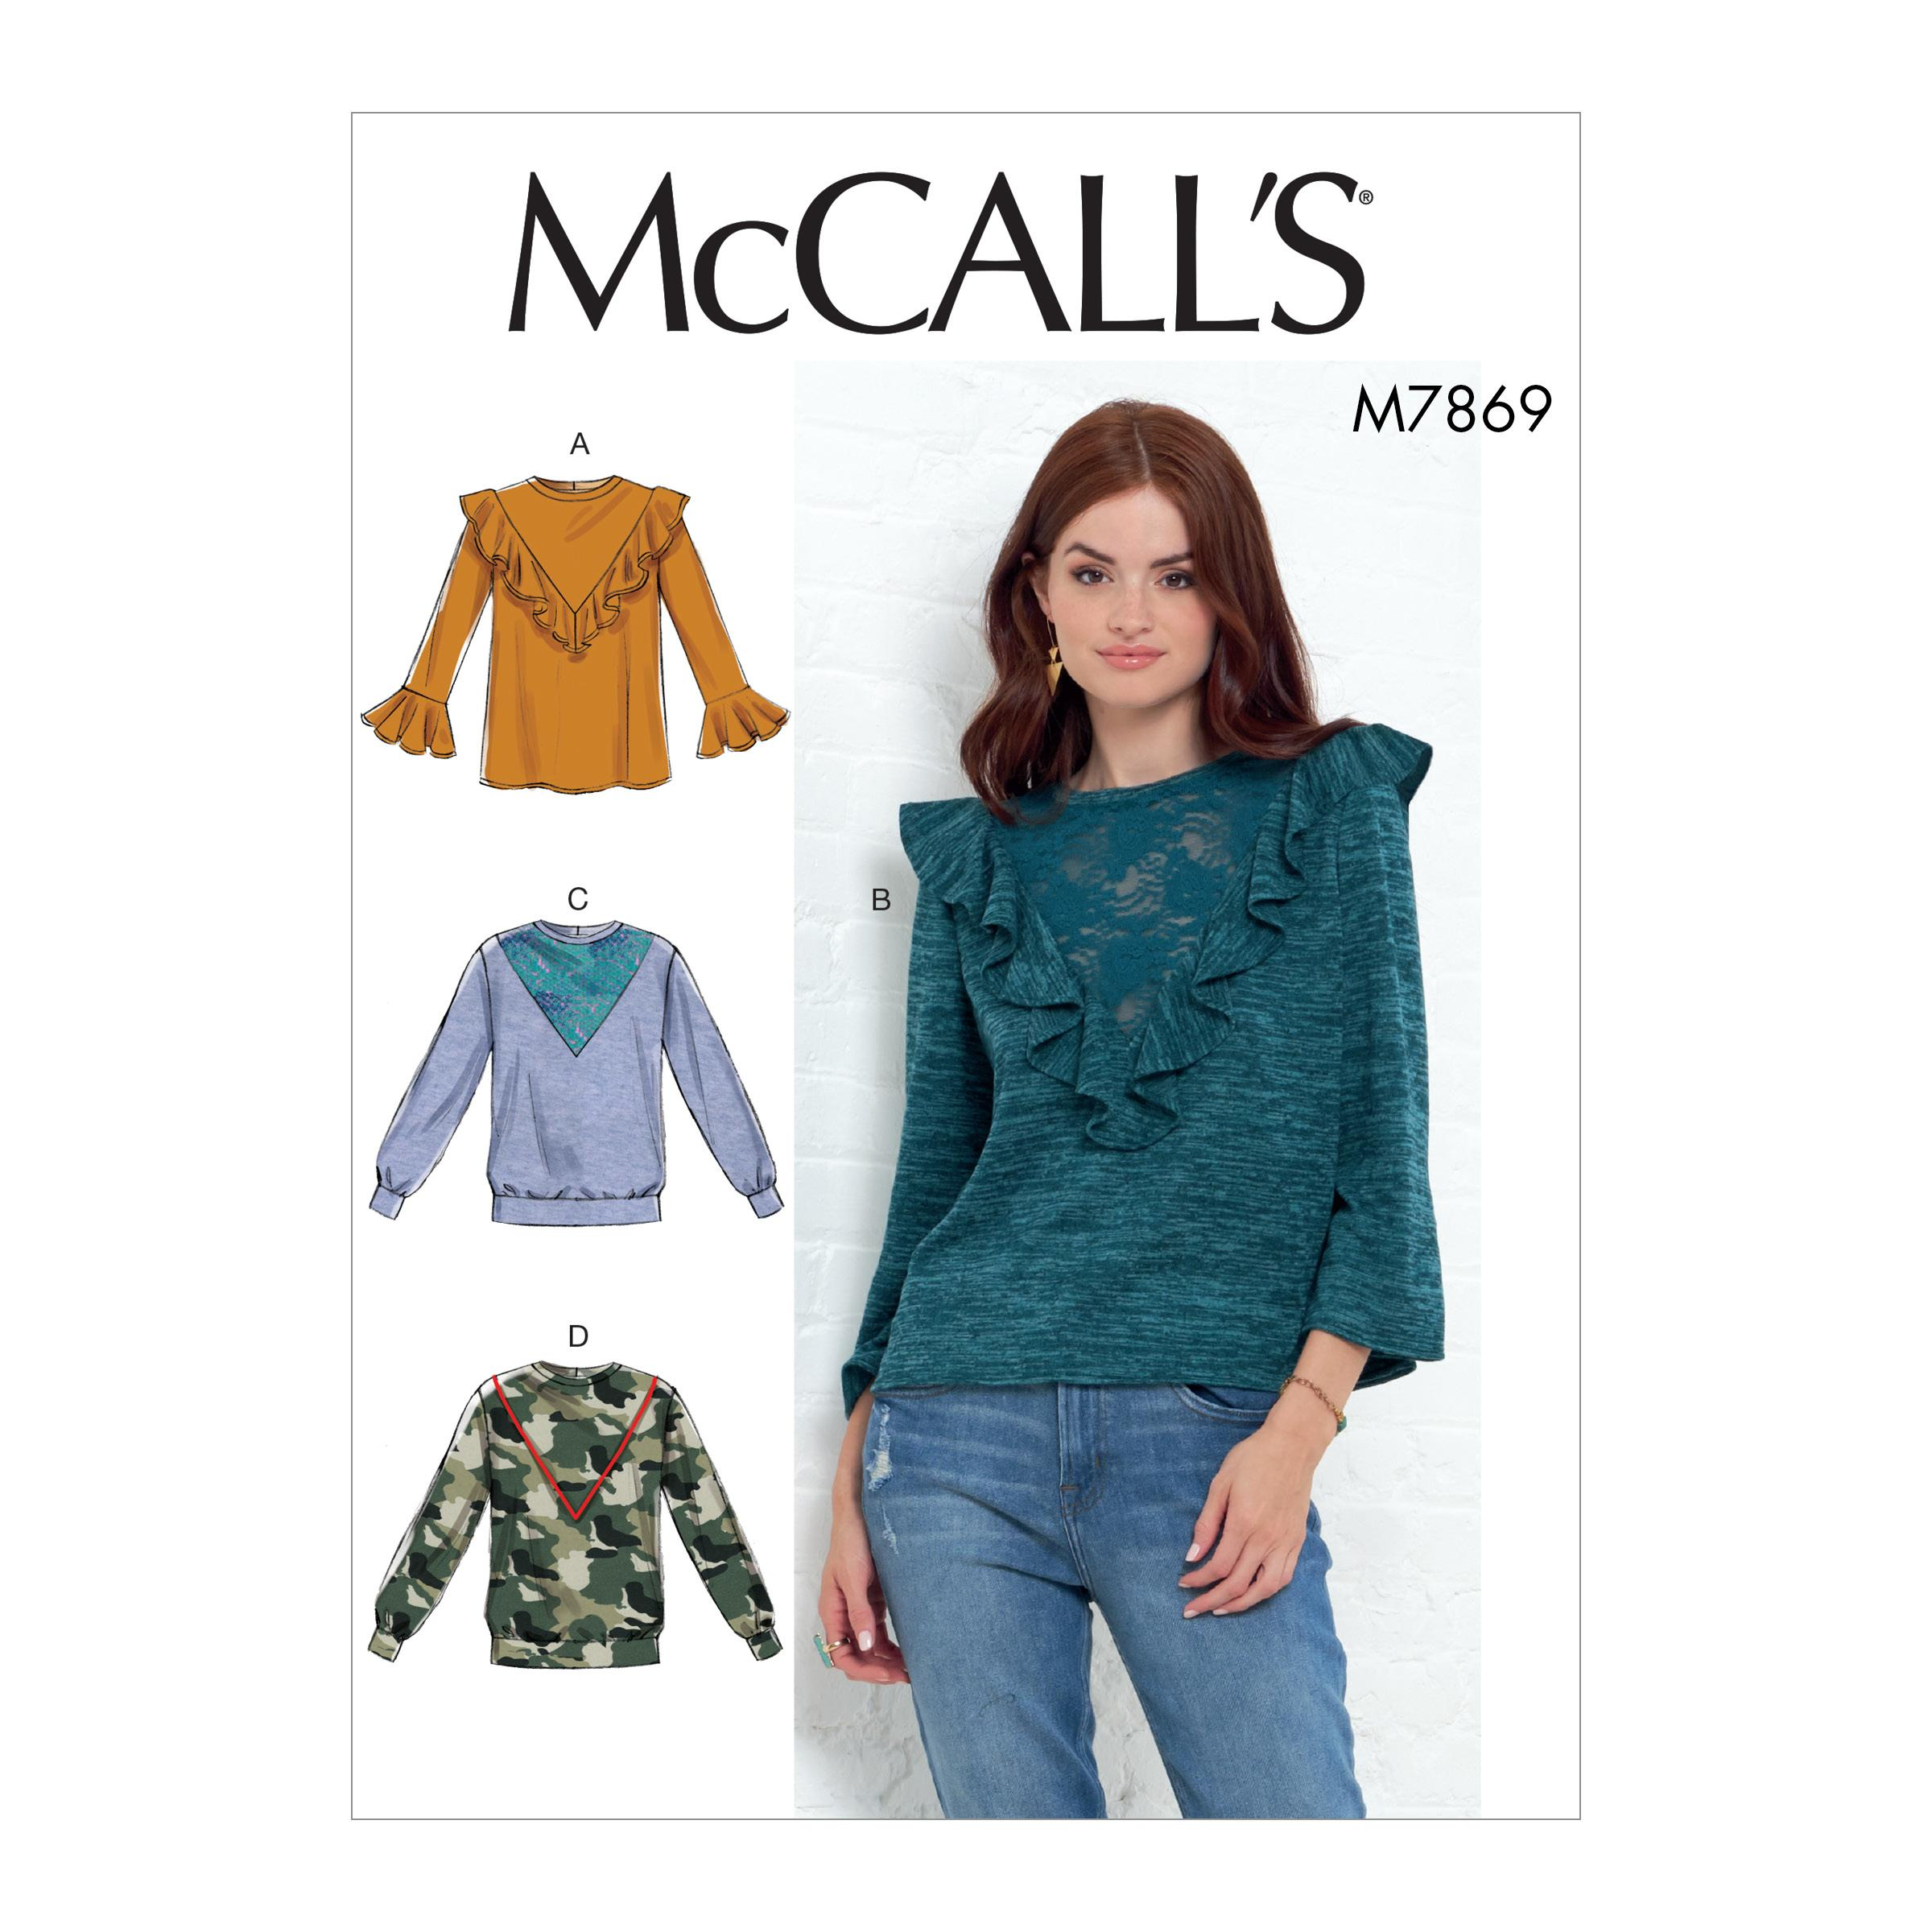 McCalls M7869 Misses Tops